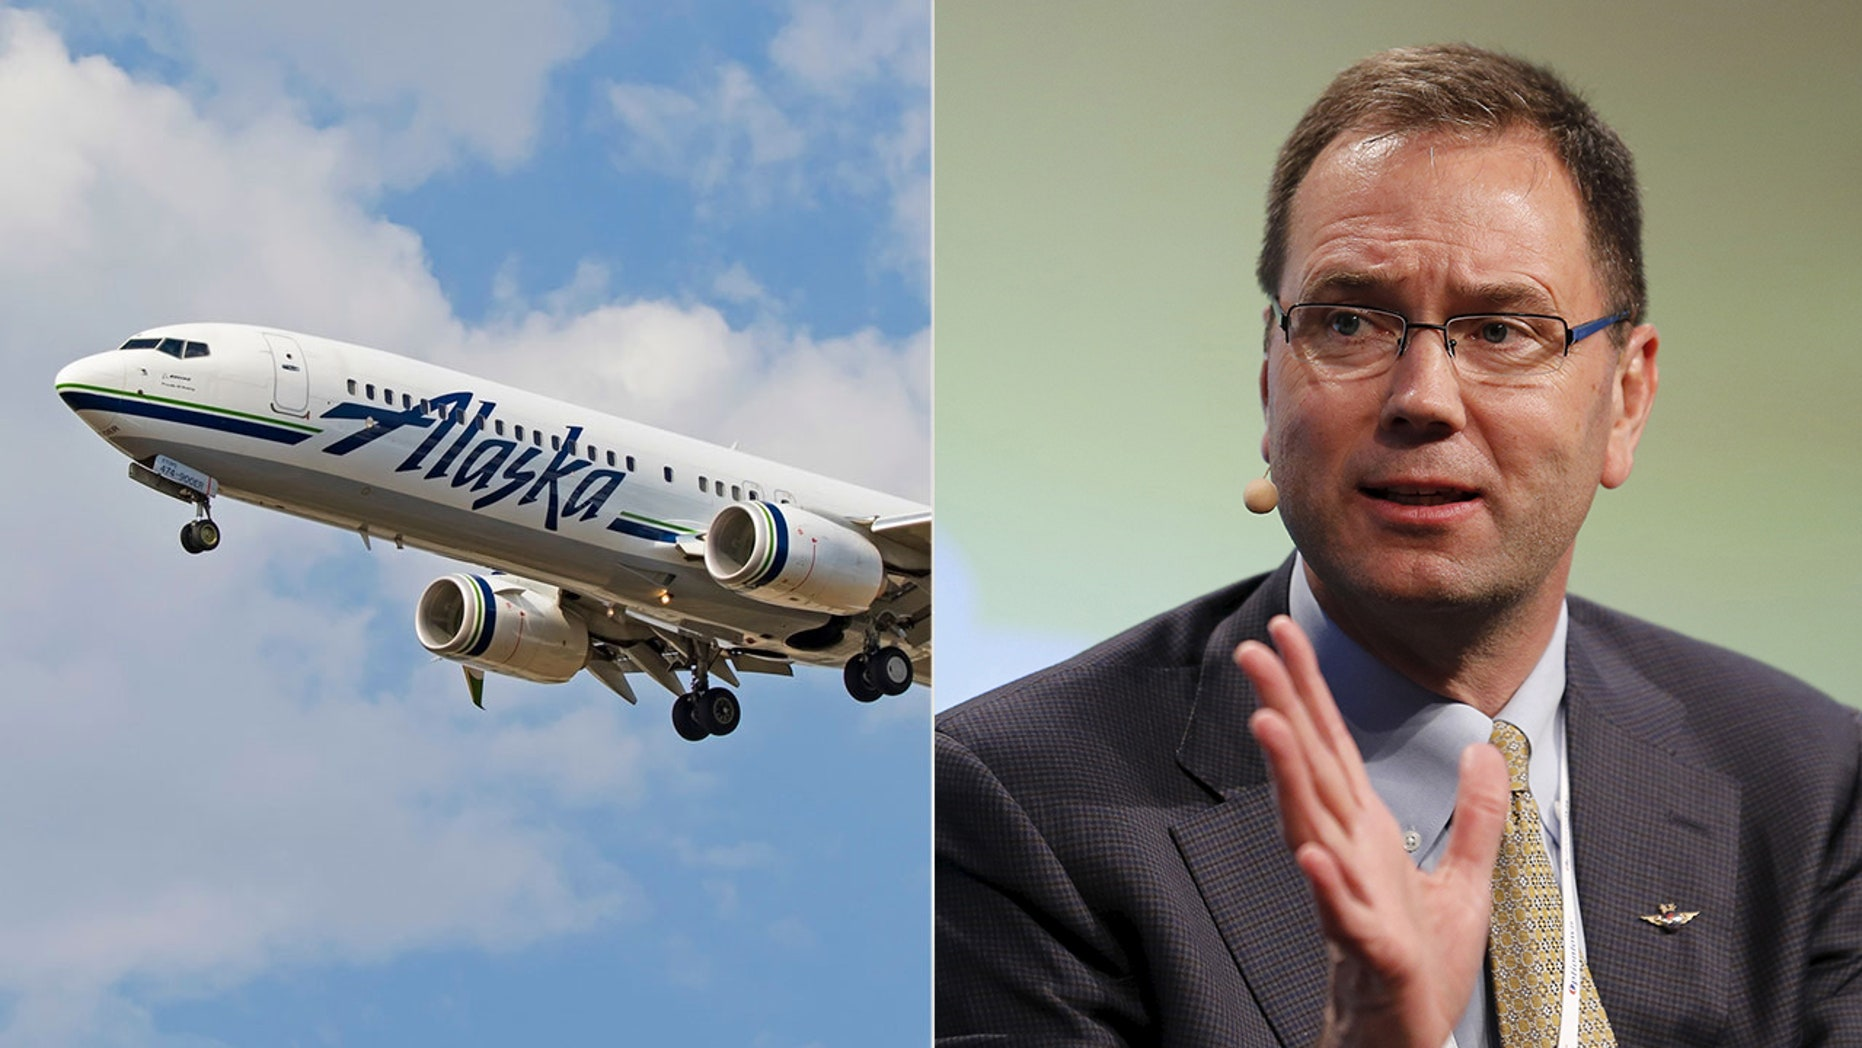 """""""To be clear, sexual harassment and assault have absolutely no place in our workplace, on board our flights, or any place,"""" Alaska Airlines CEO Brad Tilden said in an April 2 statement."""